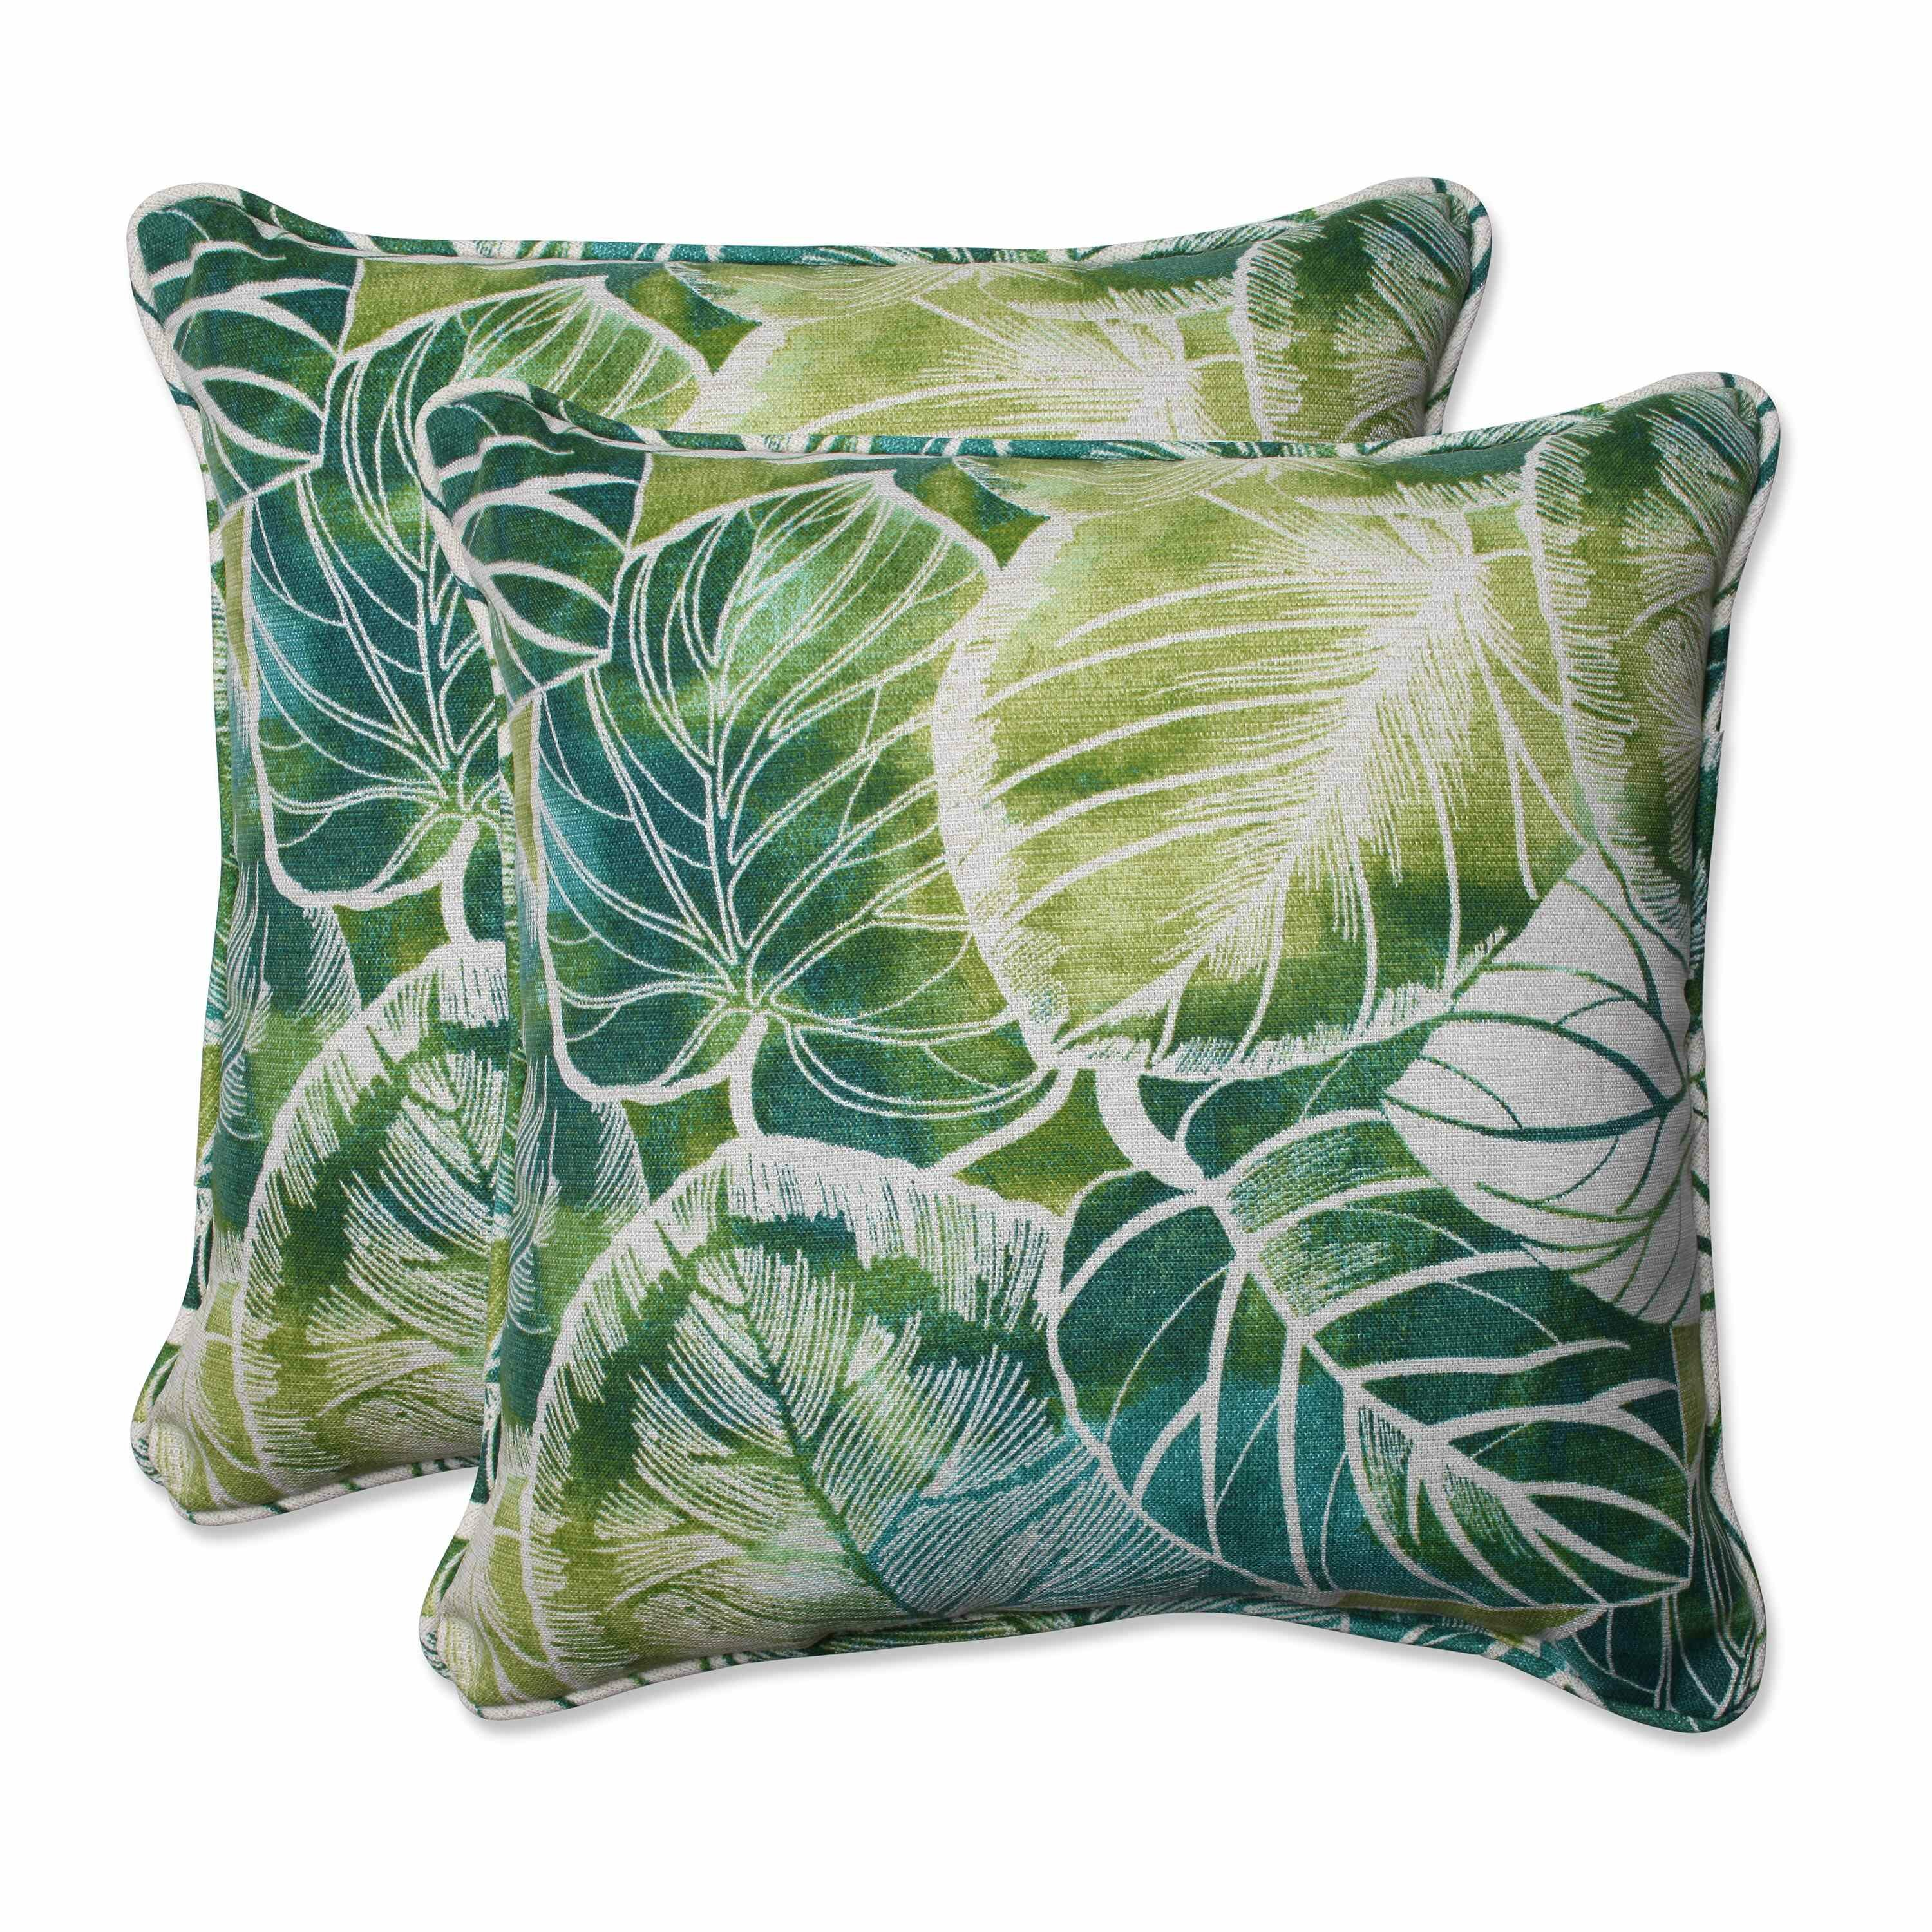 Throw Pillows In Abuja : Pillow Perfect Key Cove Lagoon Indoor/Outdoor Throw Pillow Wayfair